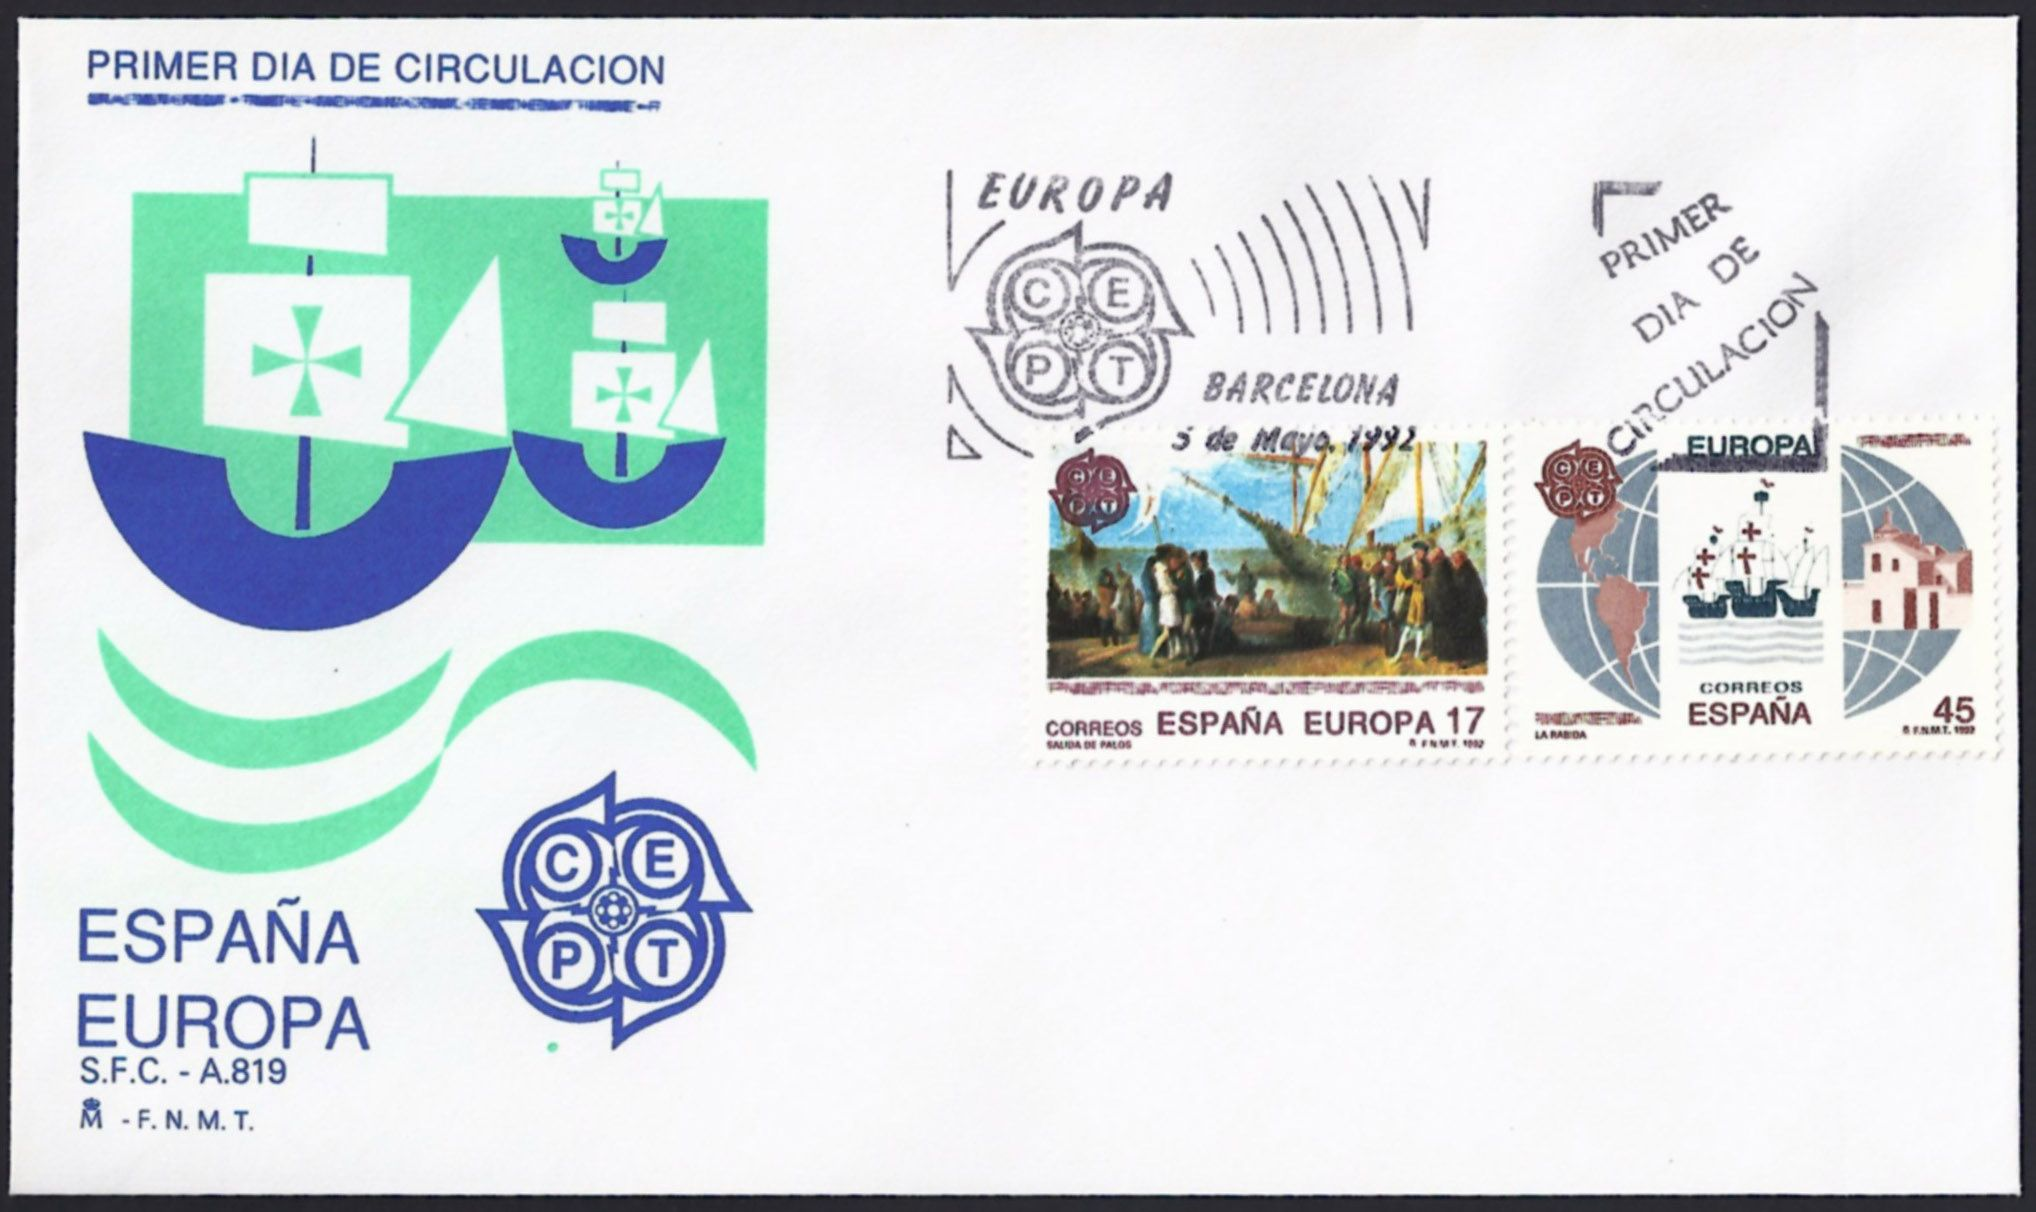 Spain First Day Cover Scott 267576 (05 May 1992